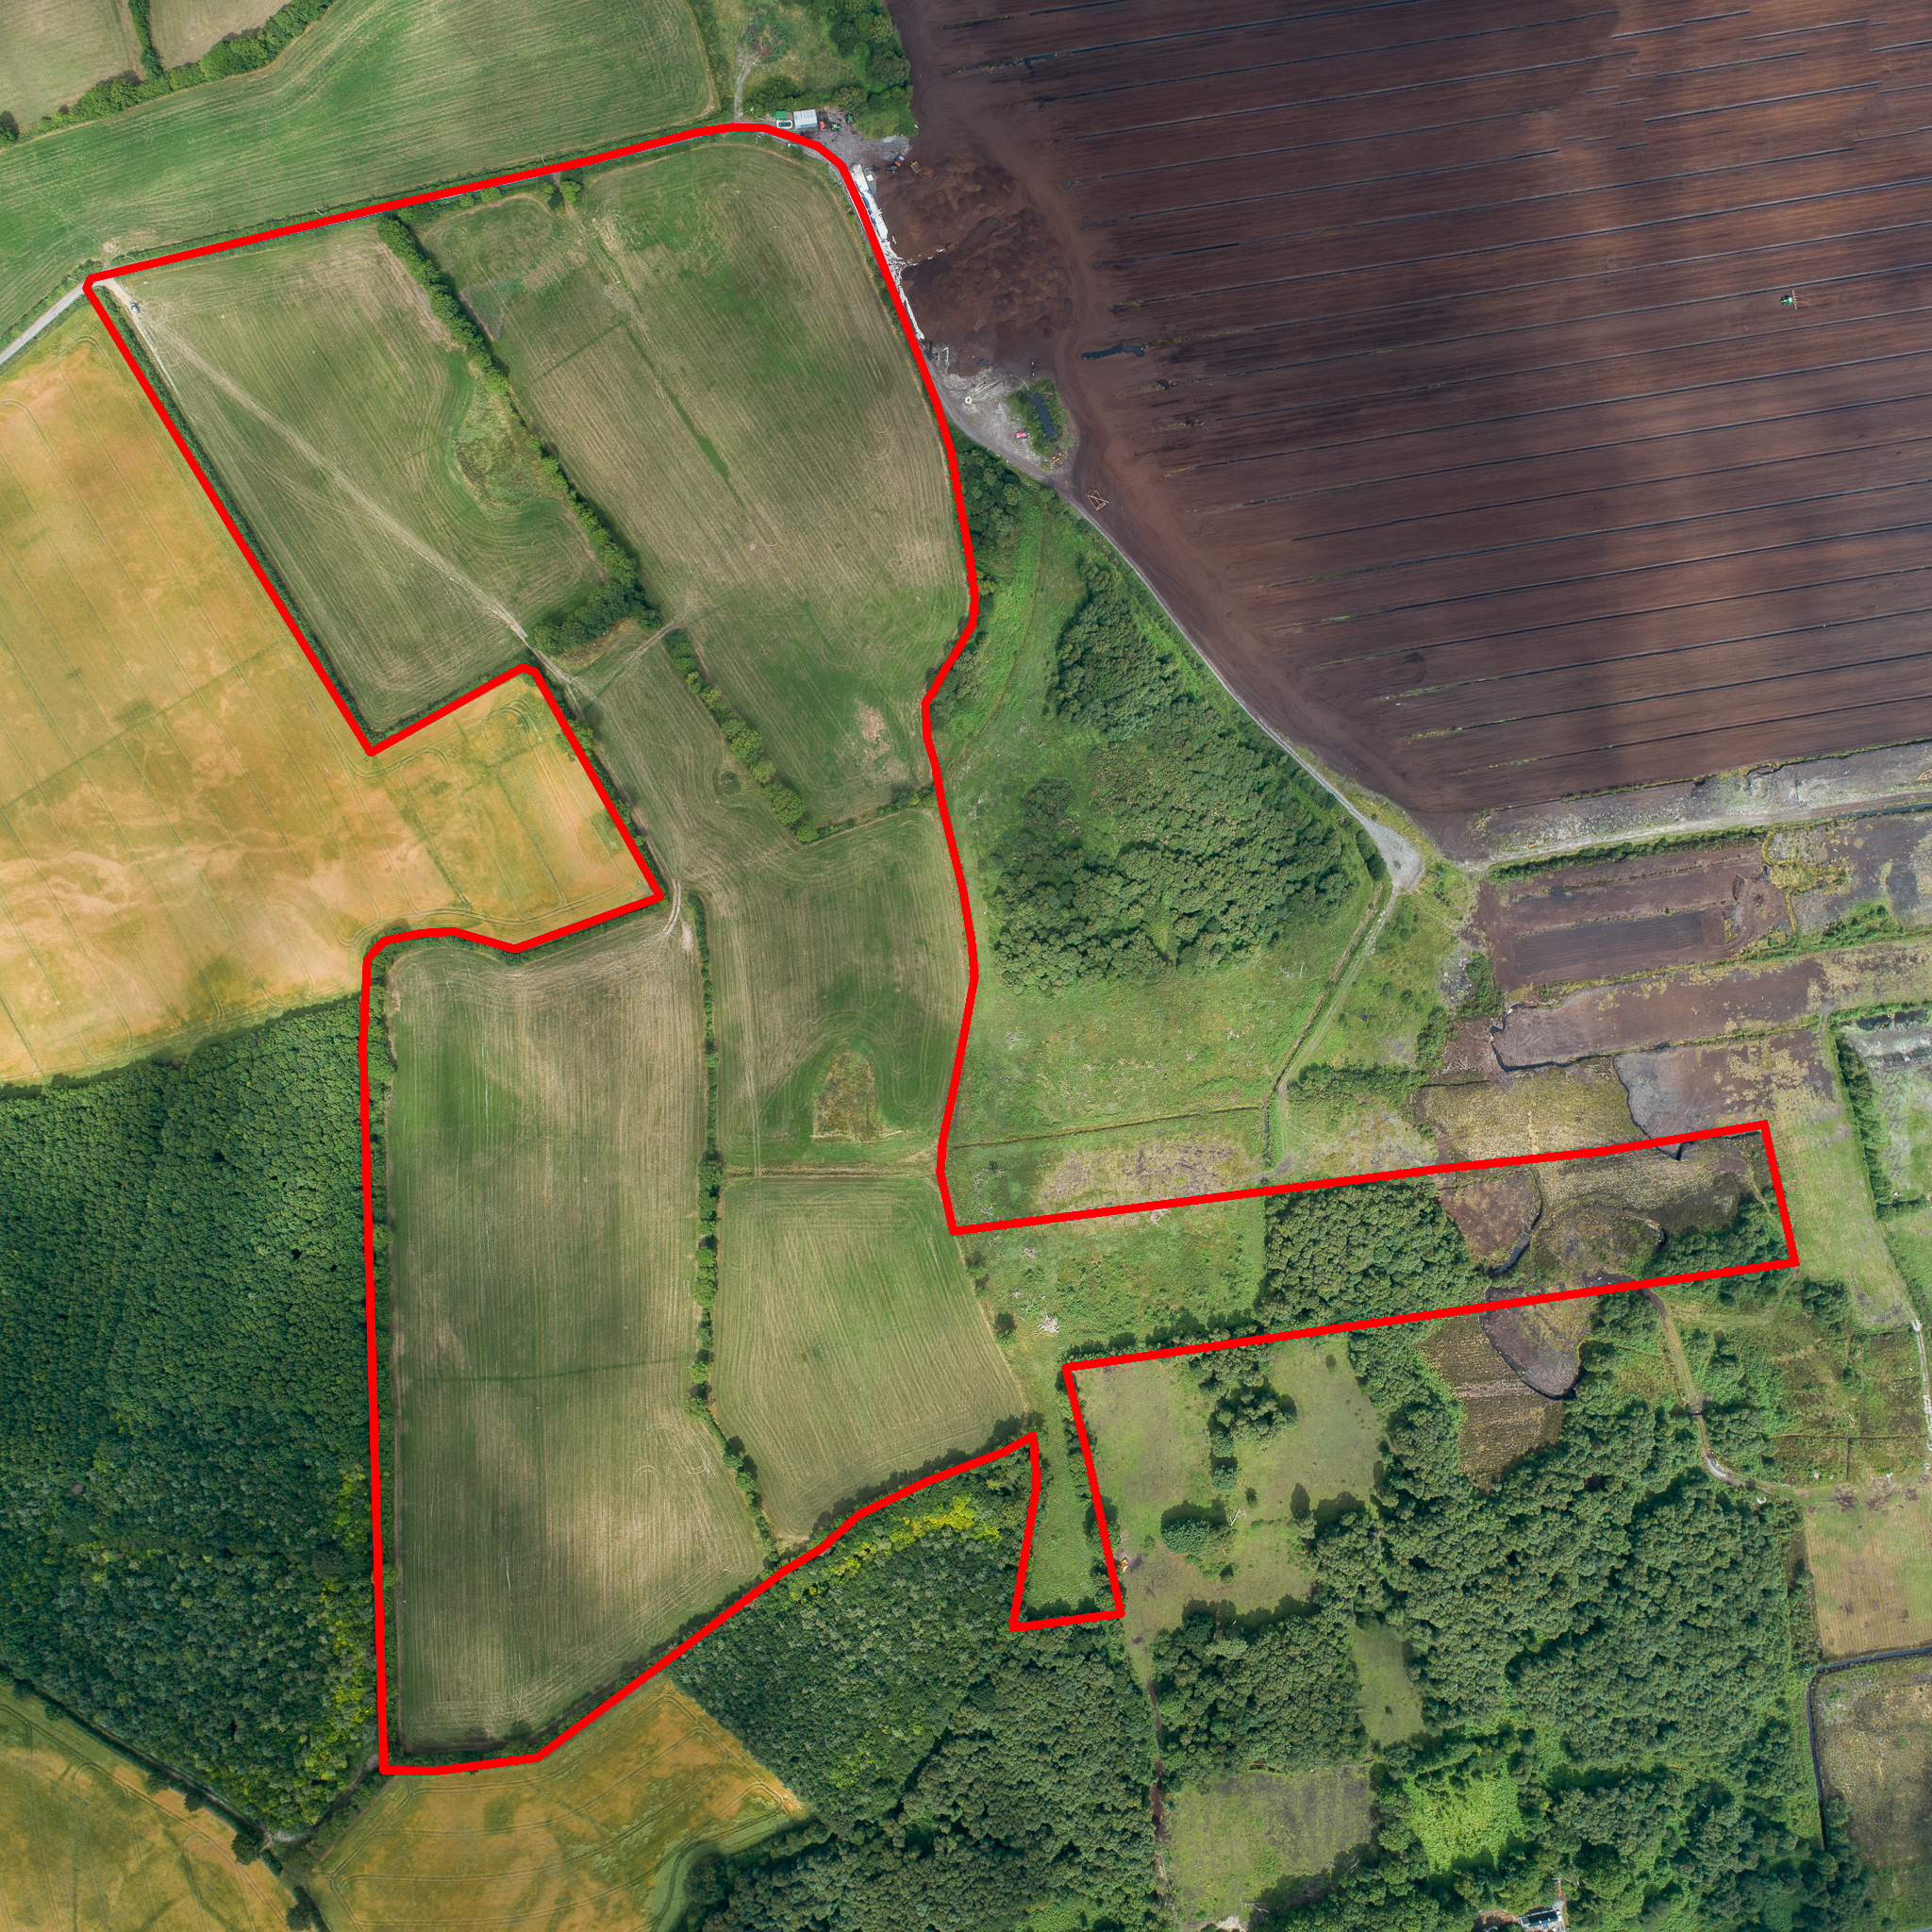 44.08ac of 'well-maintained' land returns for private treaty sale